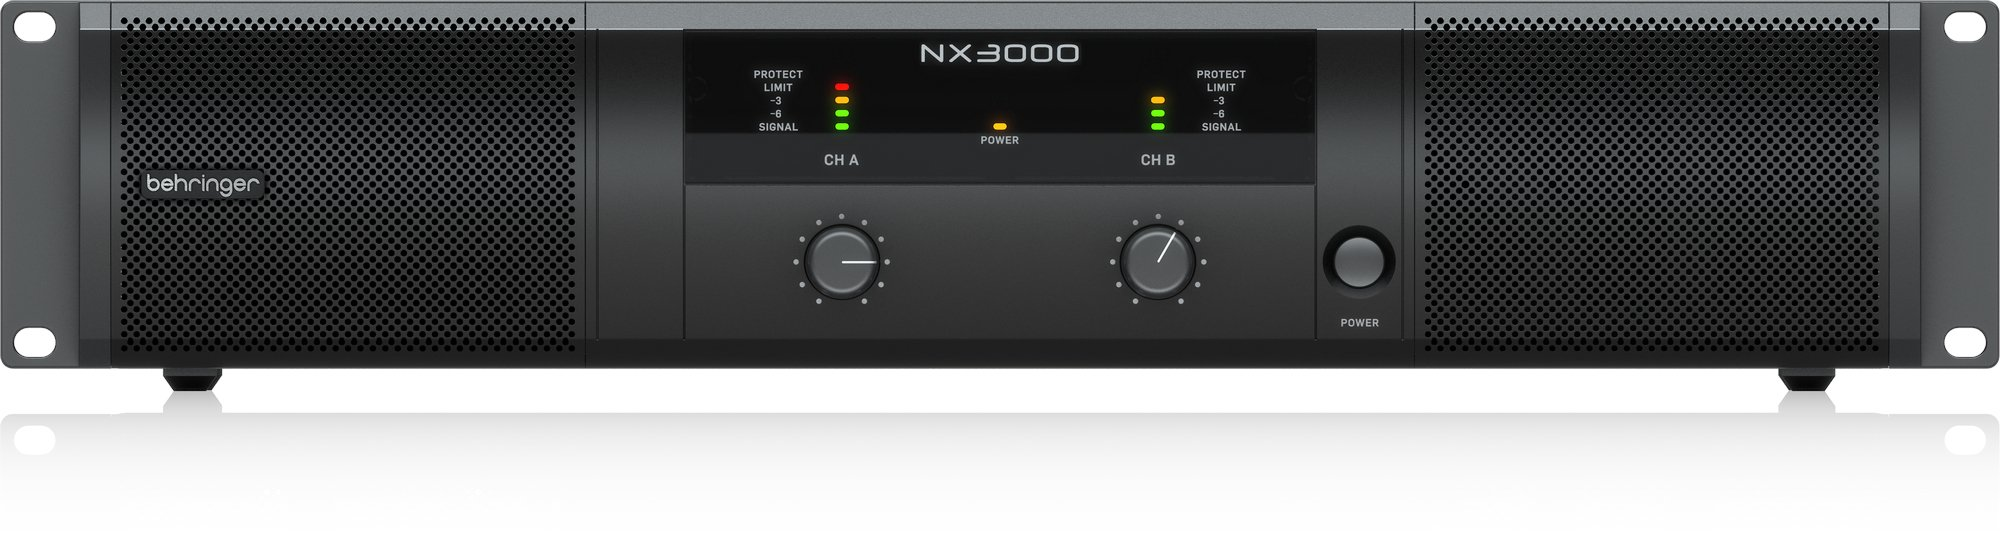 Behringer NX3000 2-Channel Power Amplifier, 900W At 4 Ohm